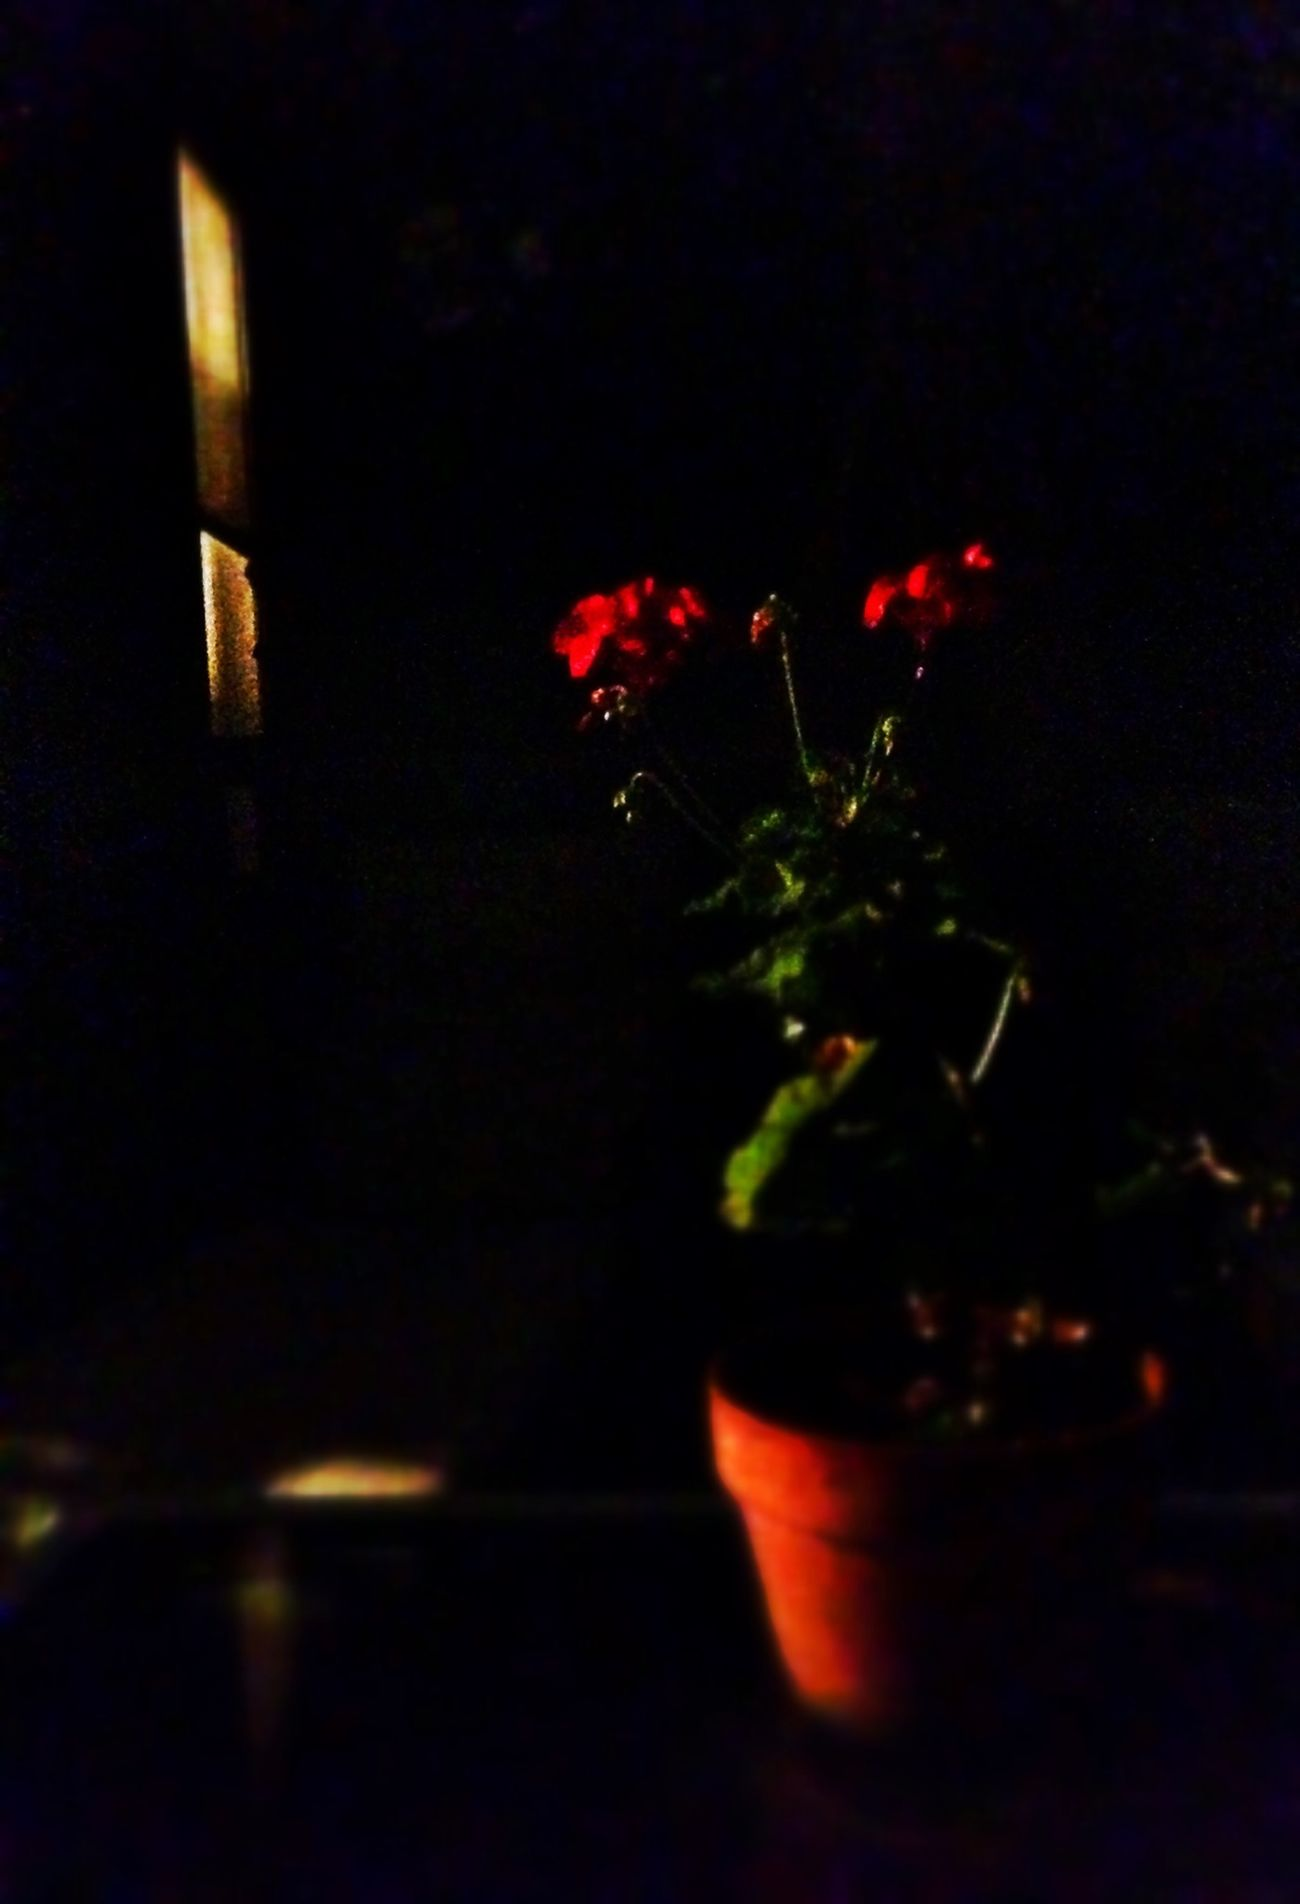 night flowers. Night Observing Death Dark